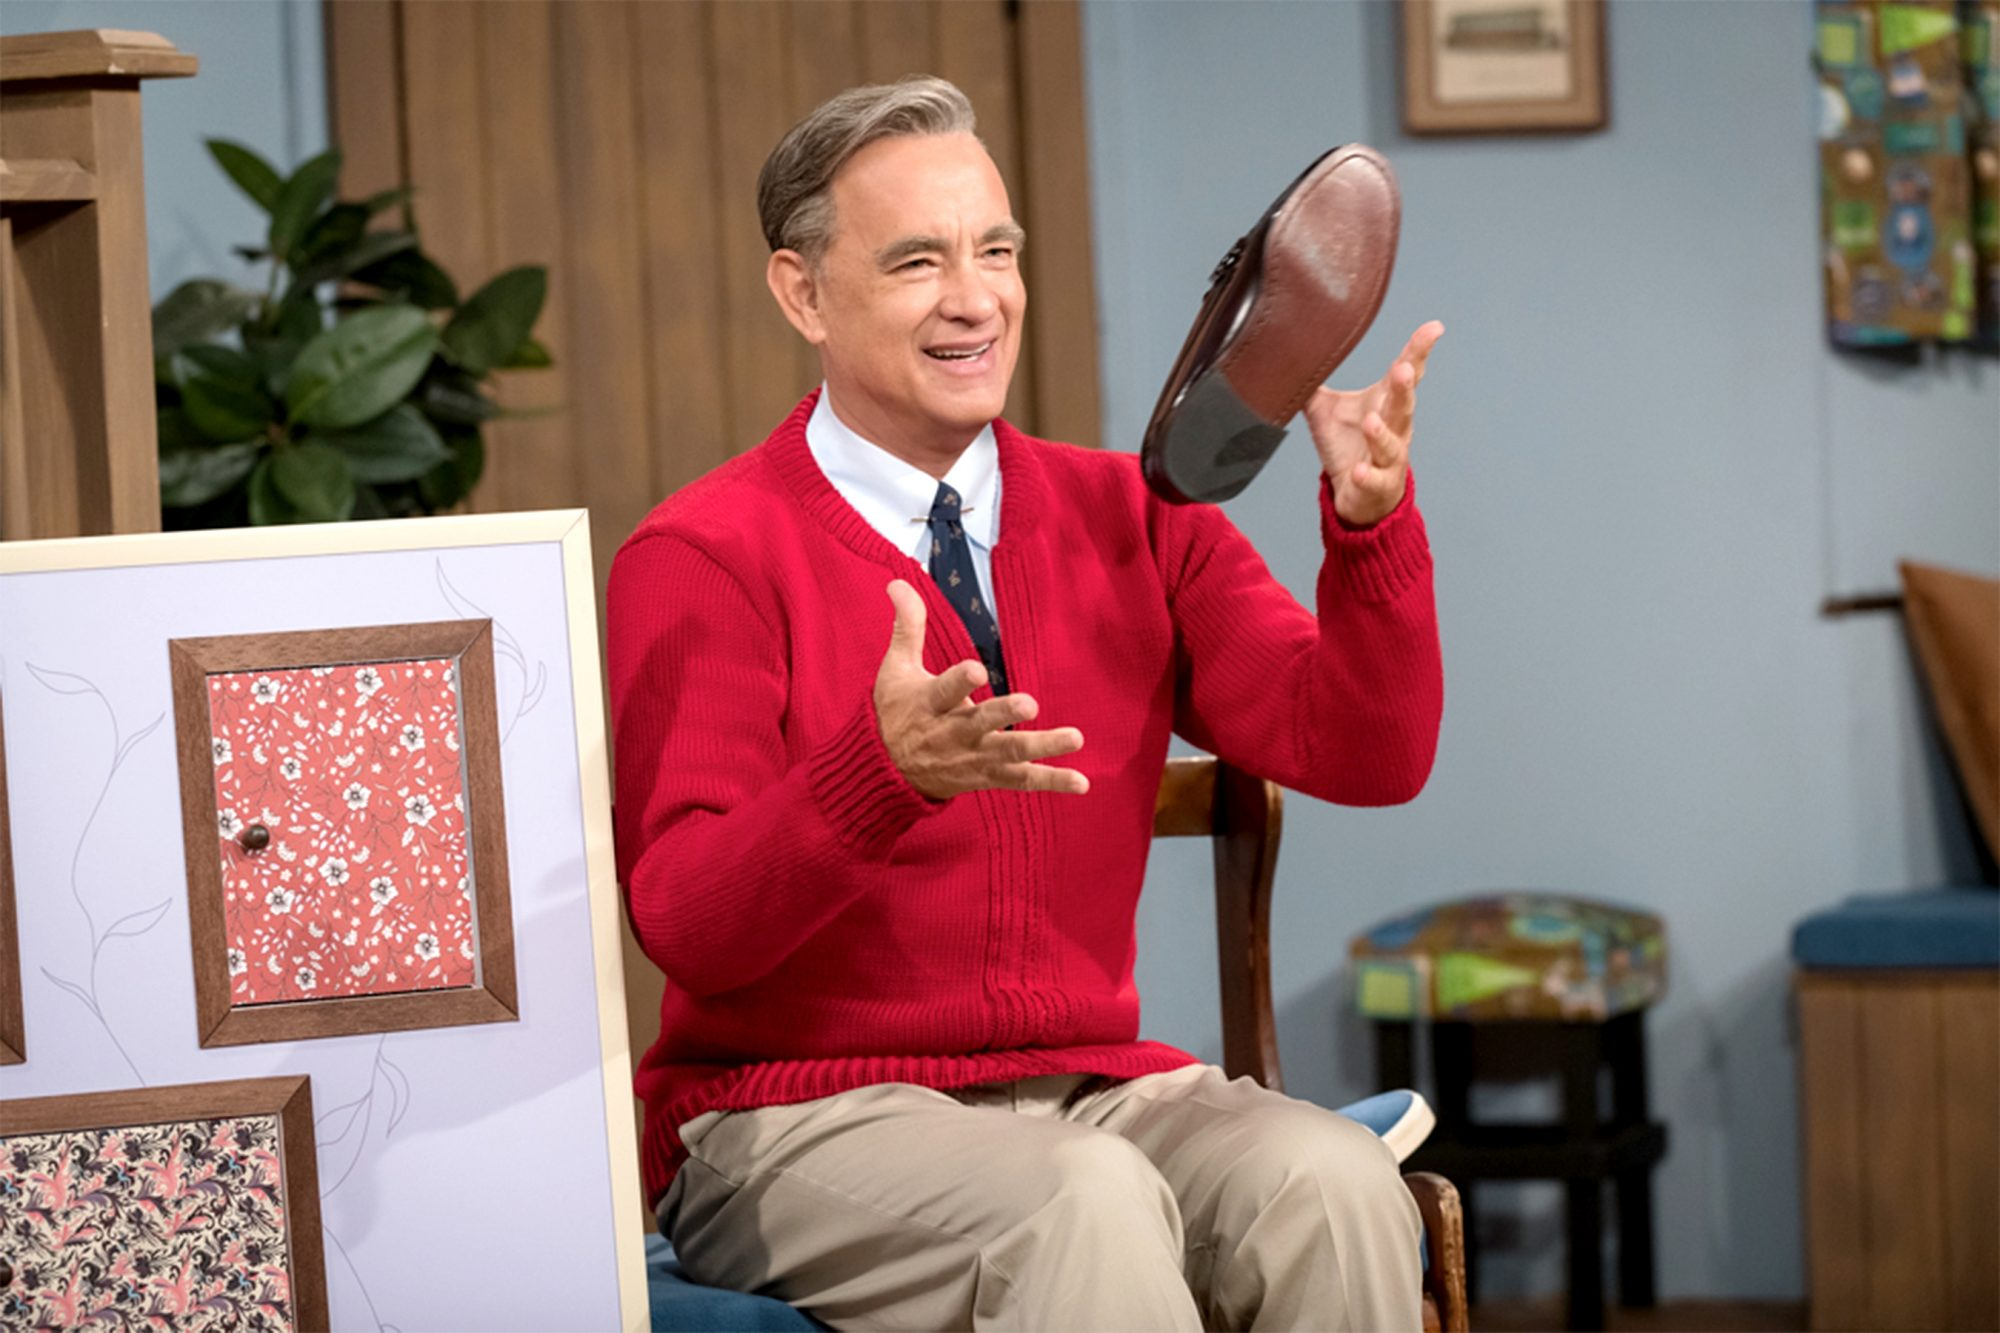 Tom Hanks Looks Just Like Mr. Rogers in New Photo from A Beautiful Day in the Neighborhood image001-copy